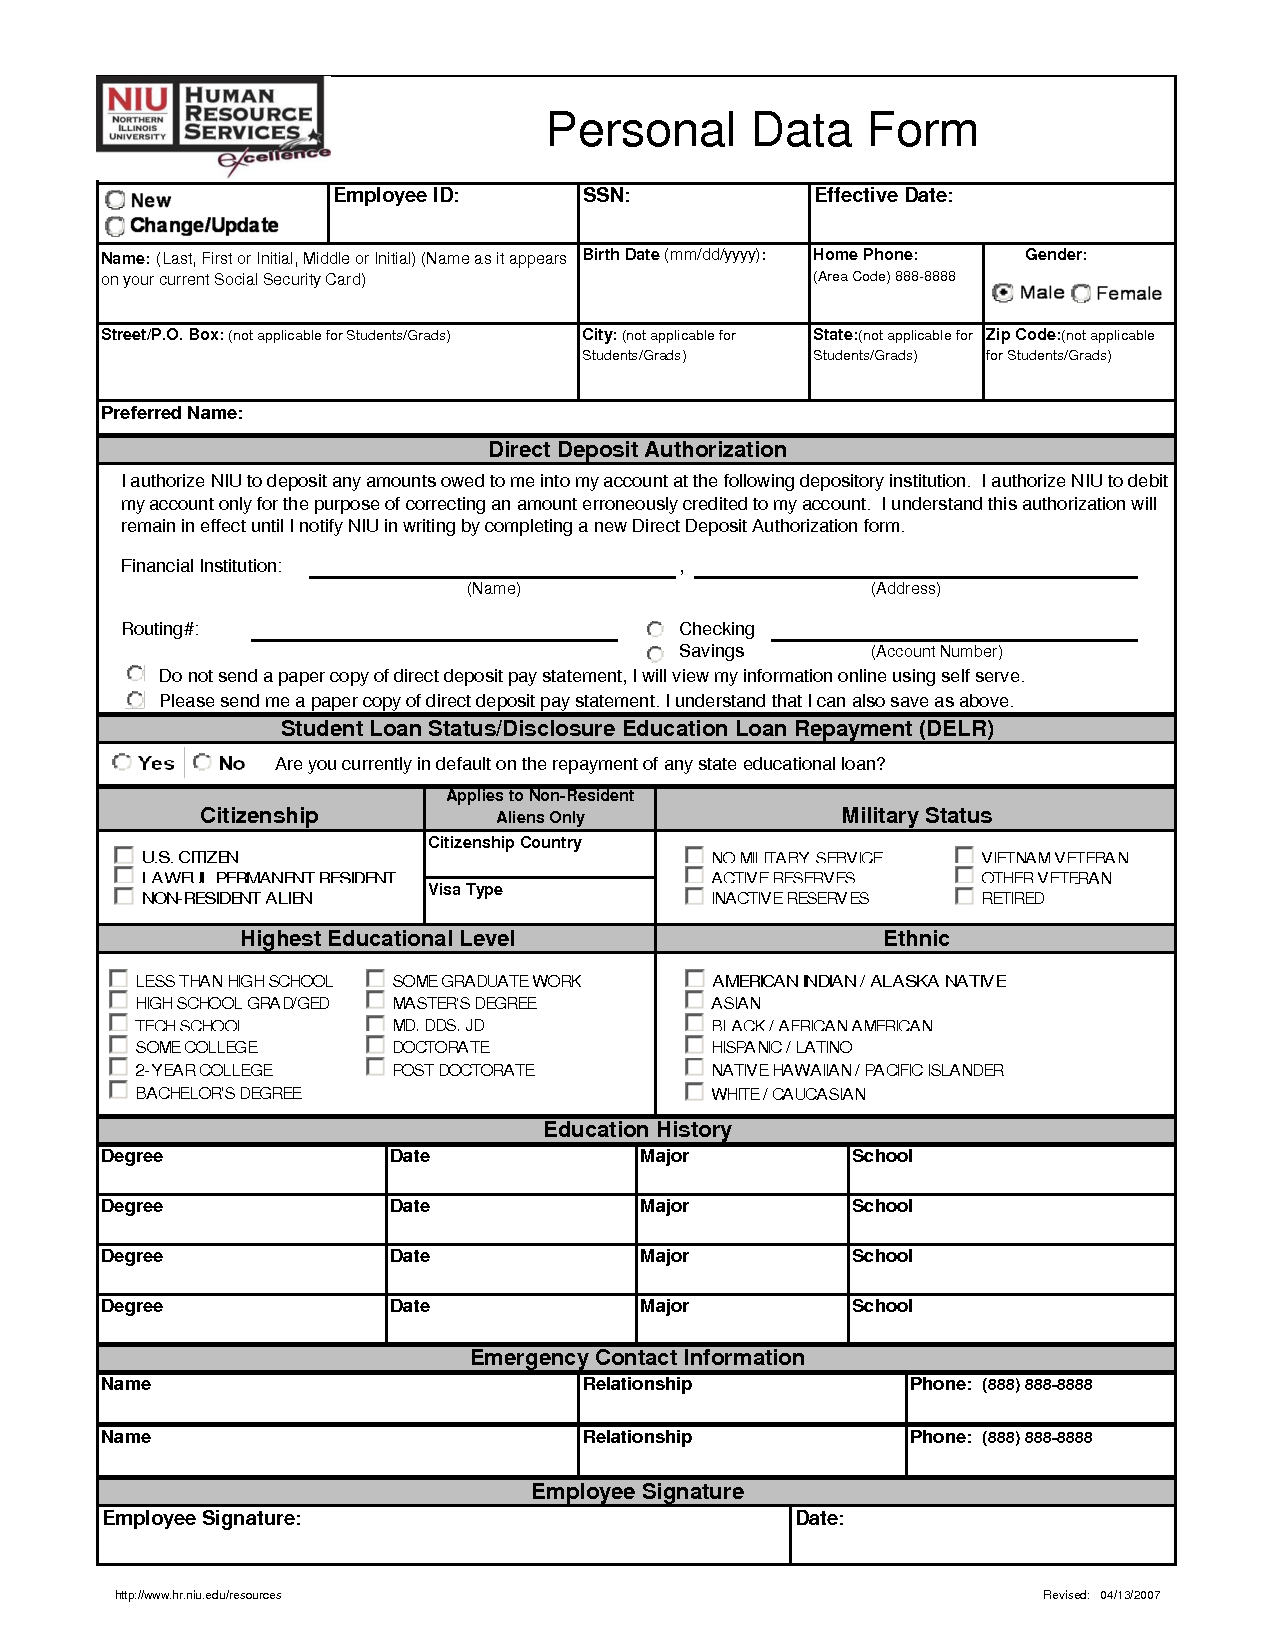 Personal Data Sheet Form Contact Form Personal Data